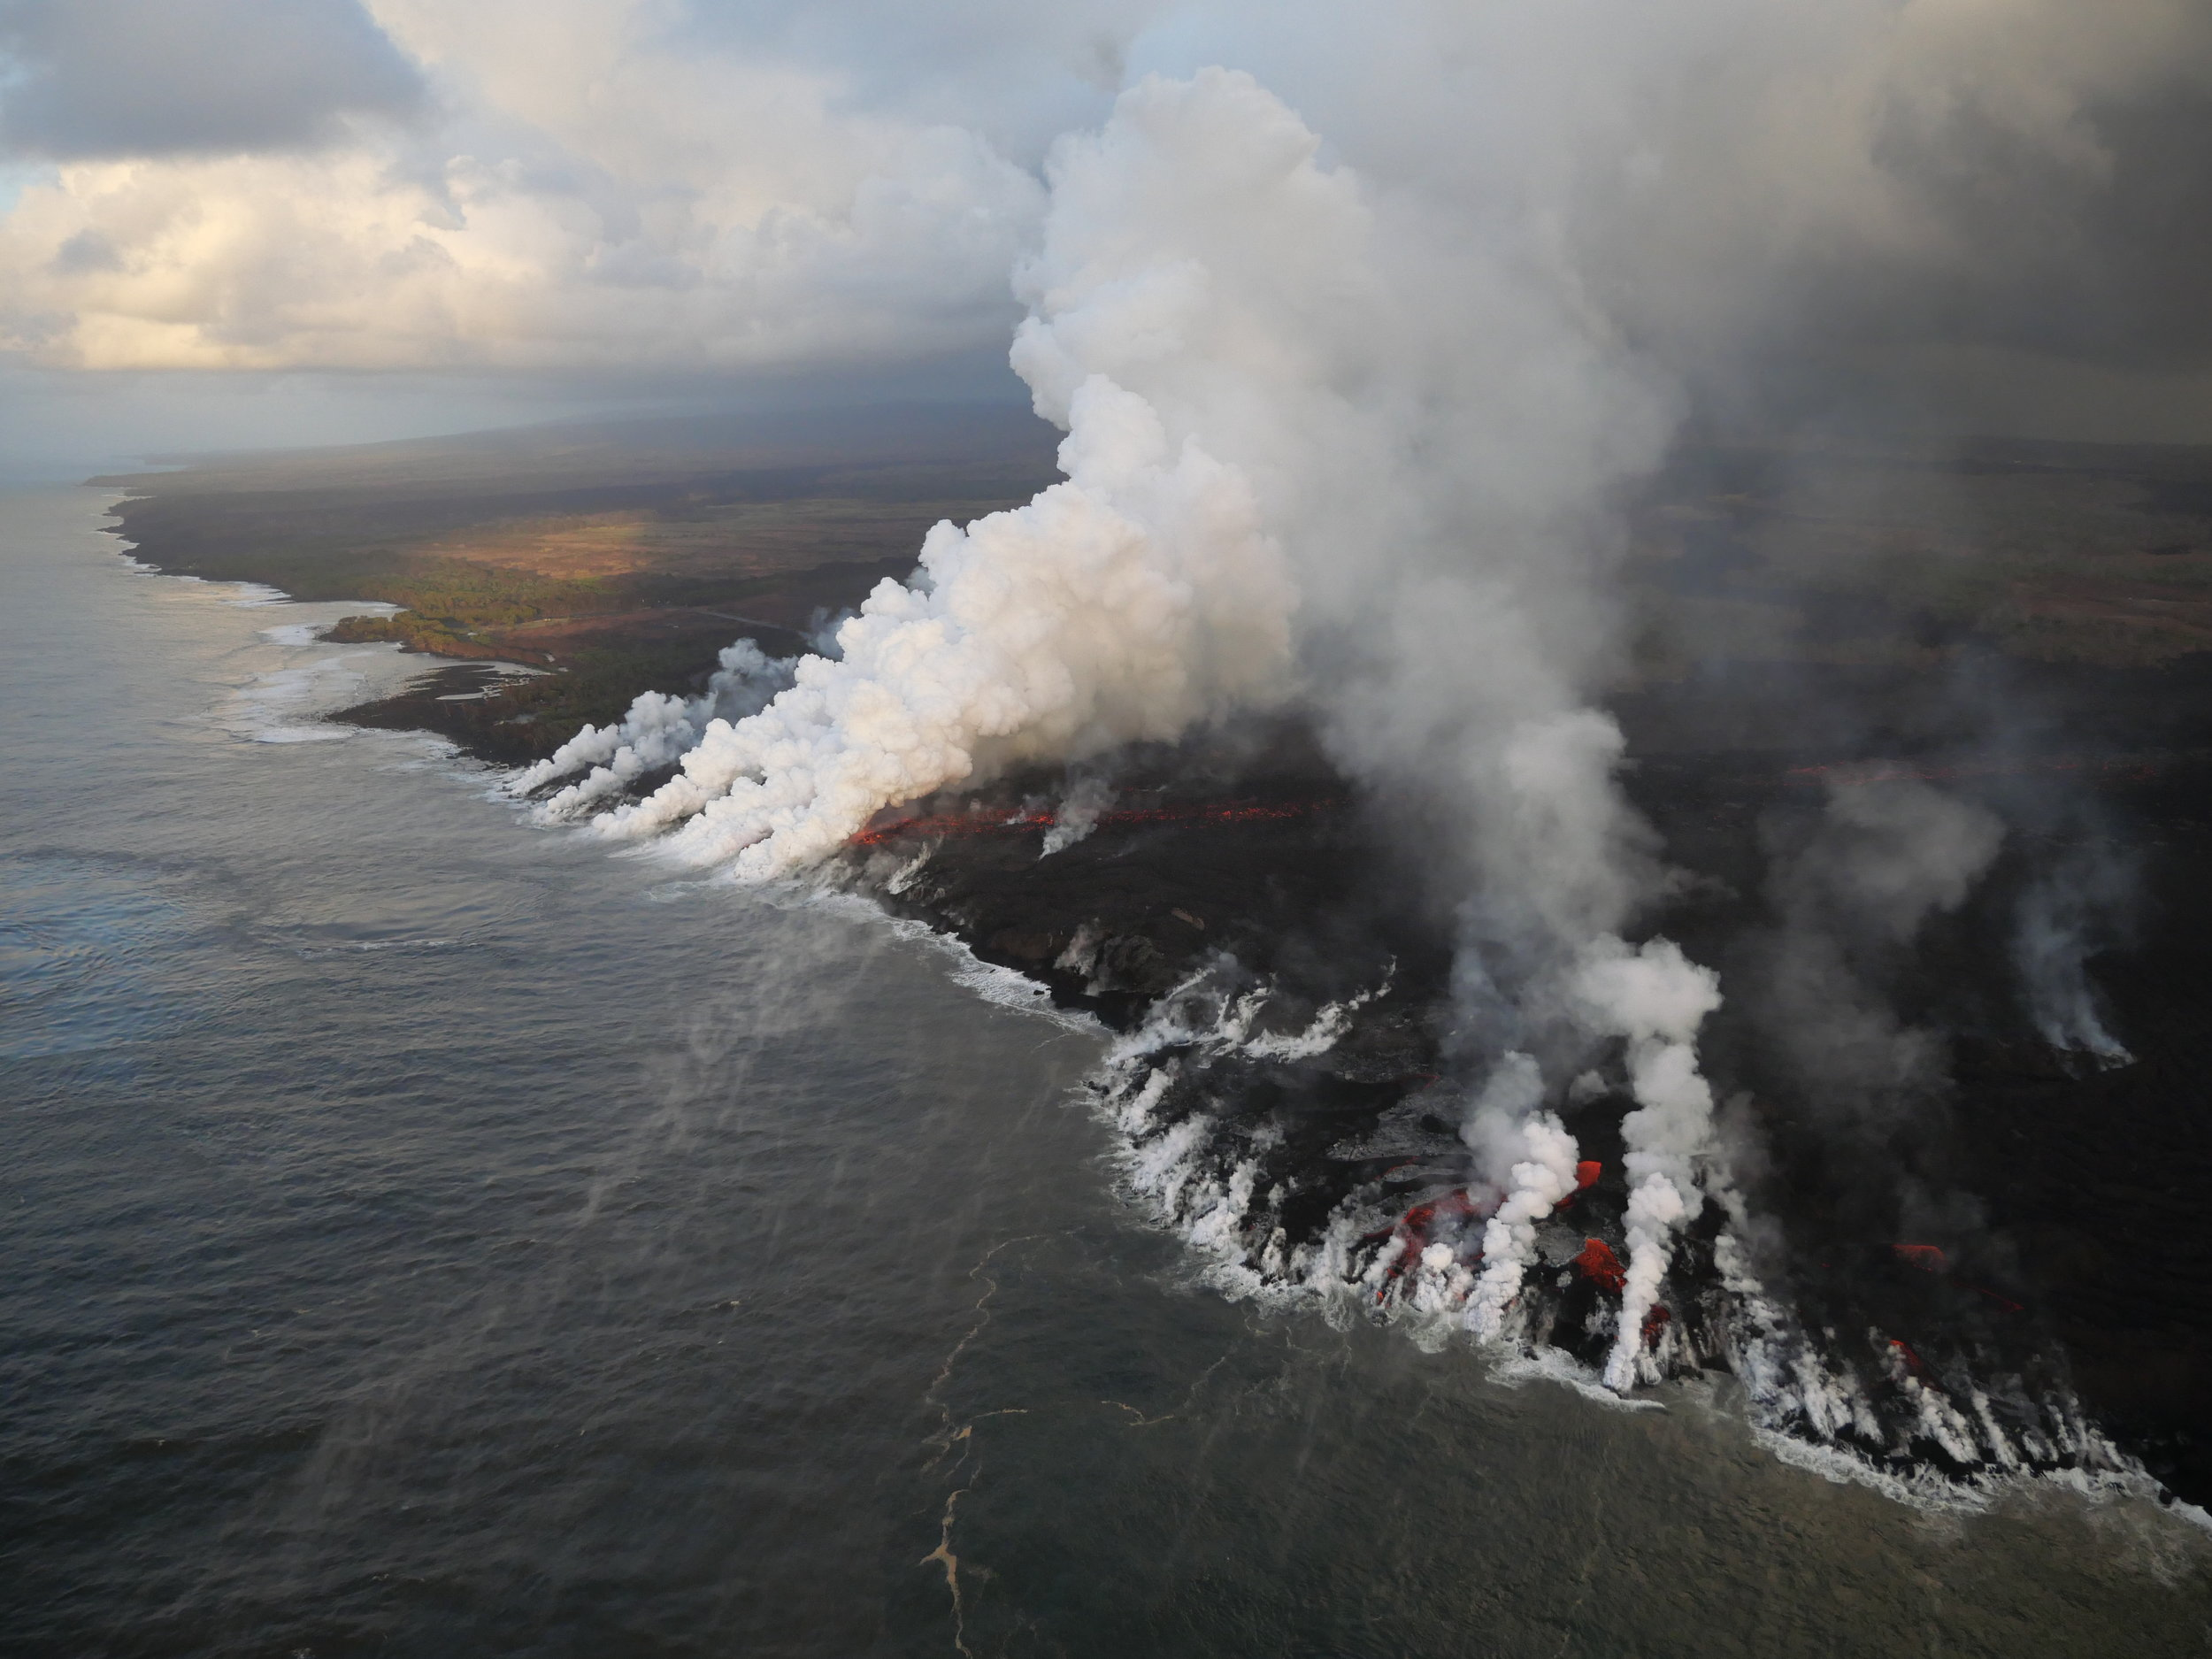 White laze plumes mark locations where lava enters the ocean over a broad area. PHOTO: USGS